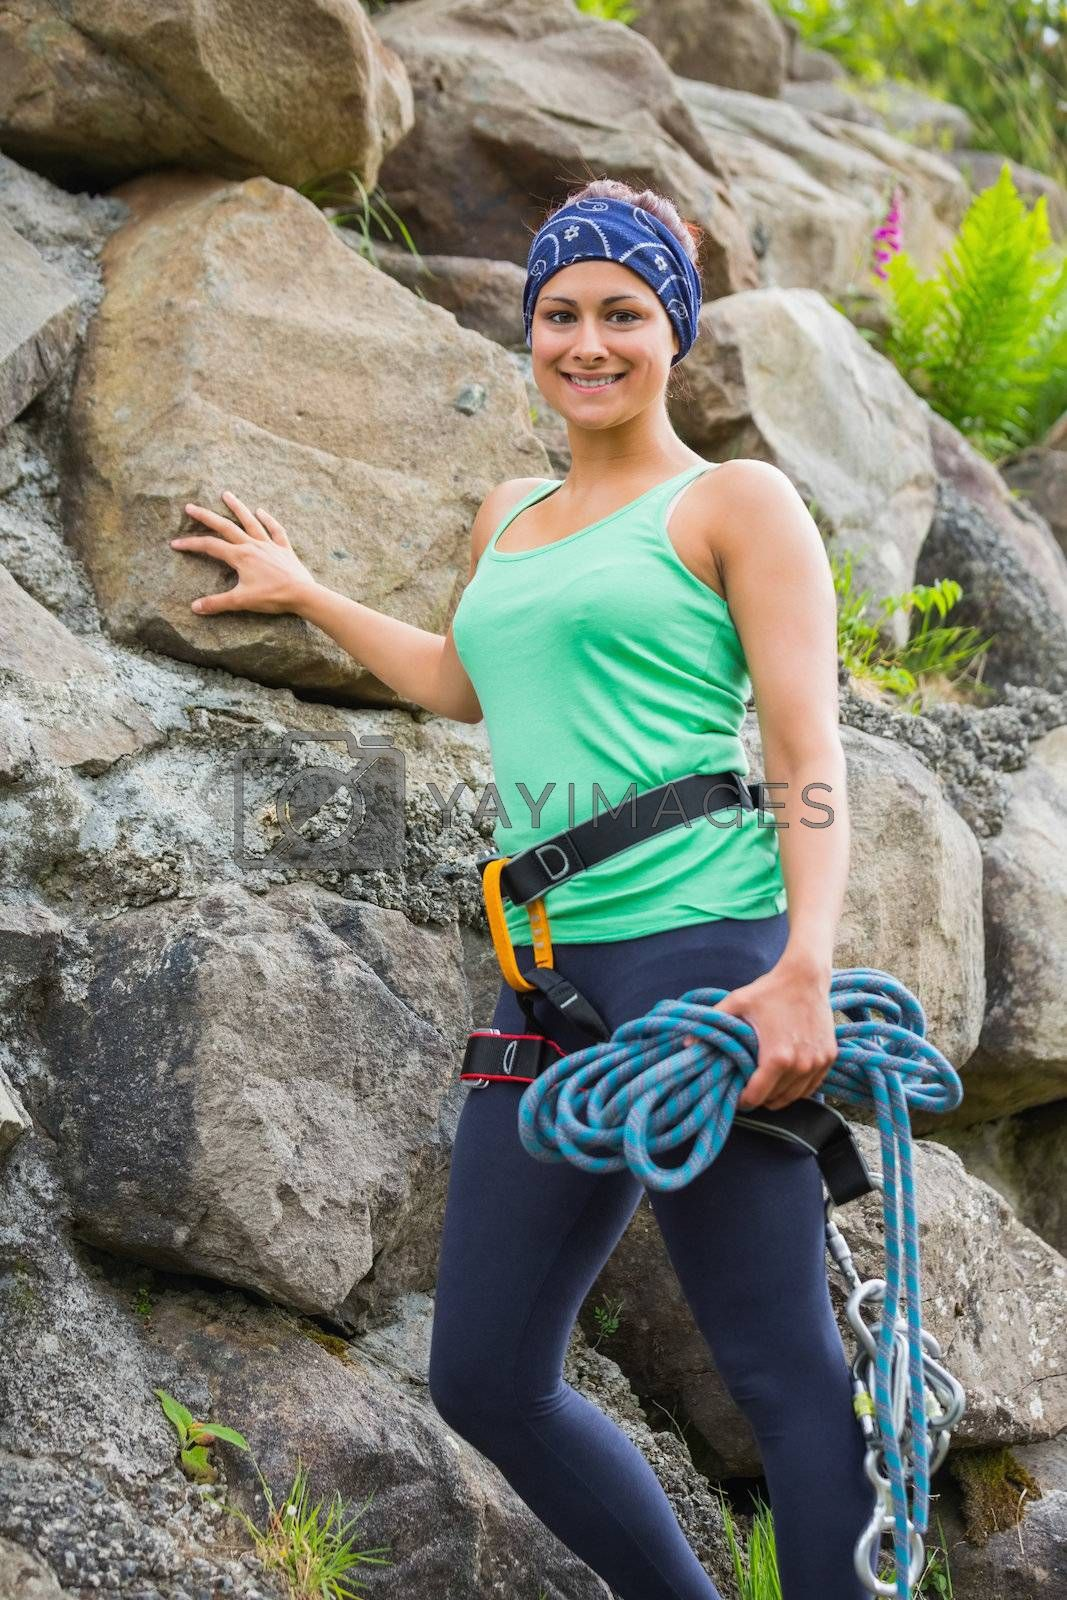 Attractive female rock climber smiling at camera by Wavebreakmedia